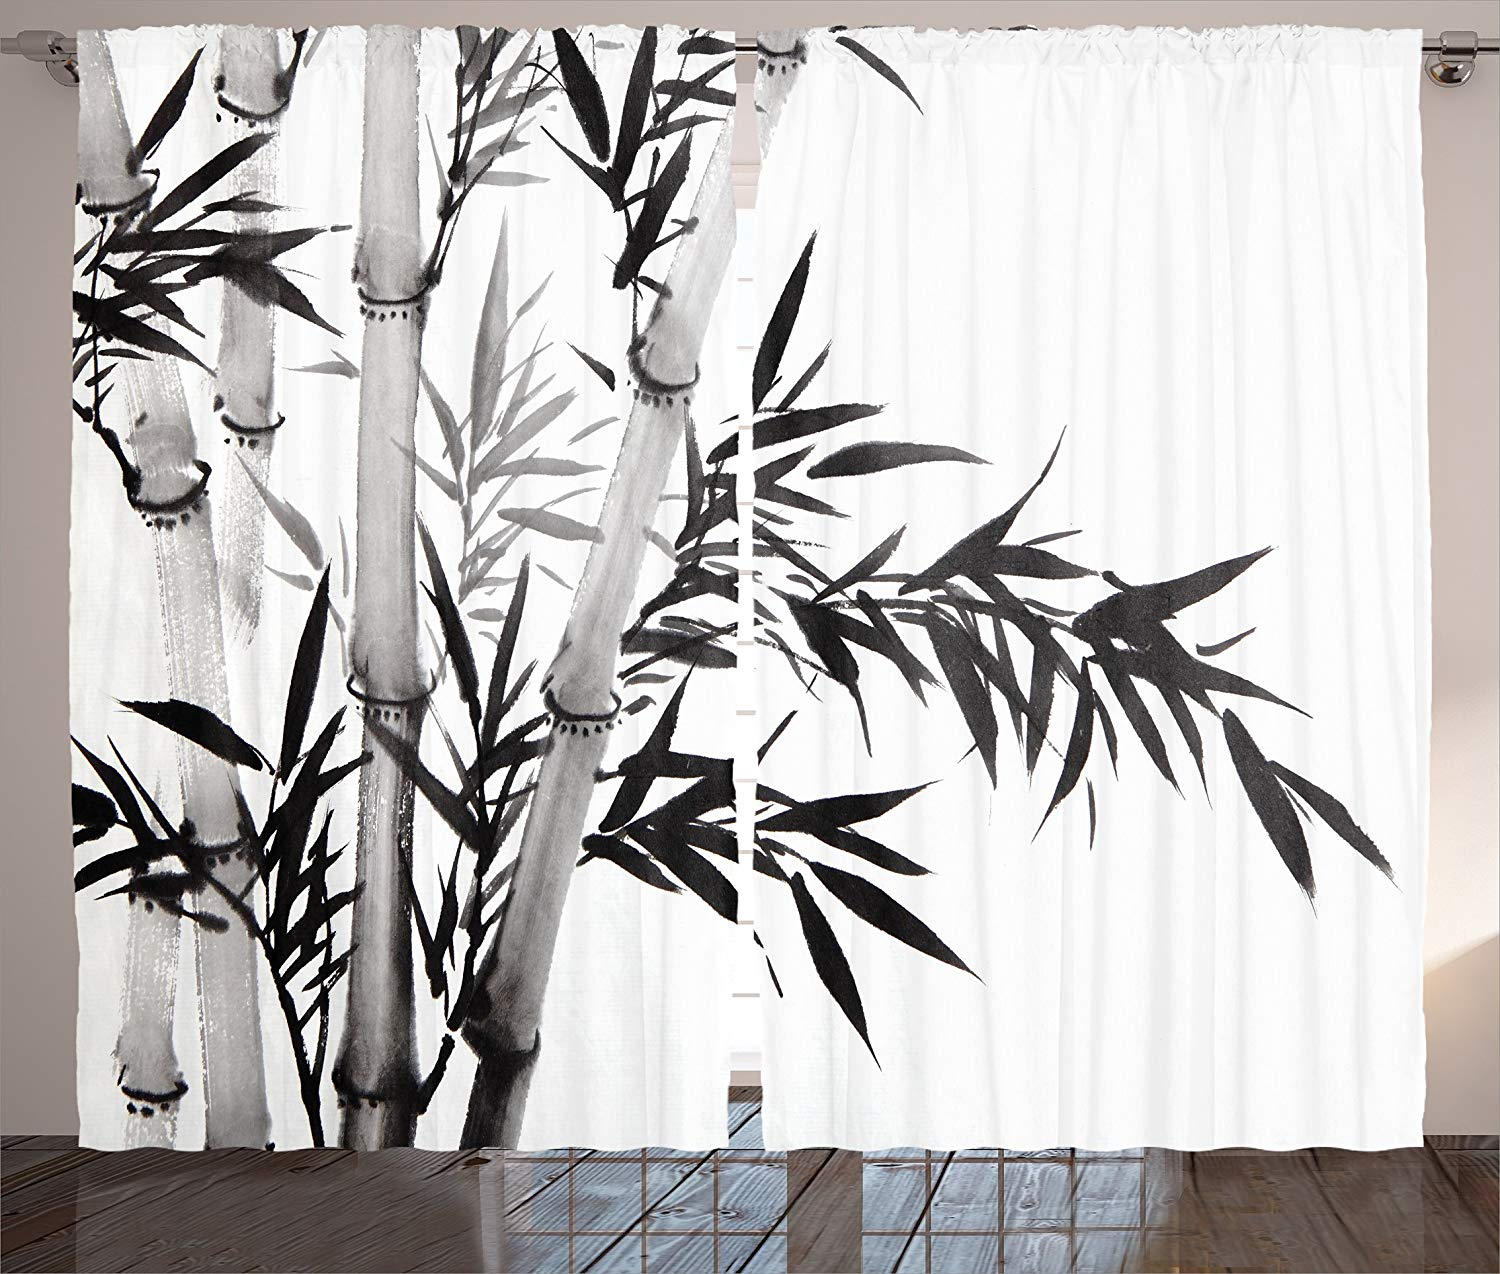 Bamboo Decor Curtains Bamboo Tree Illustration Traditional Chinese Calligraphy Style Asian Culture Decor Living Room Bedroom